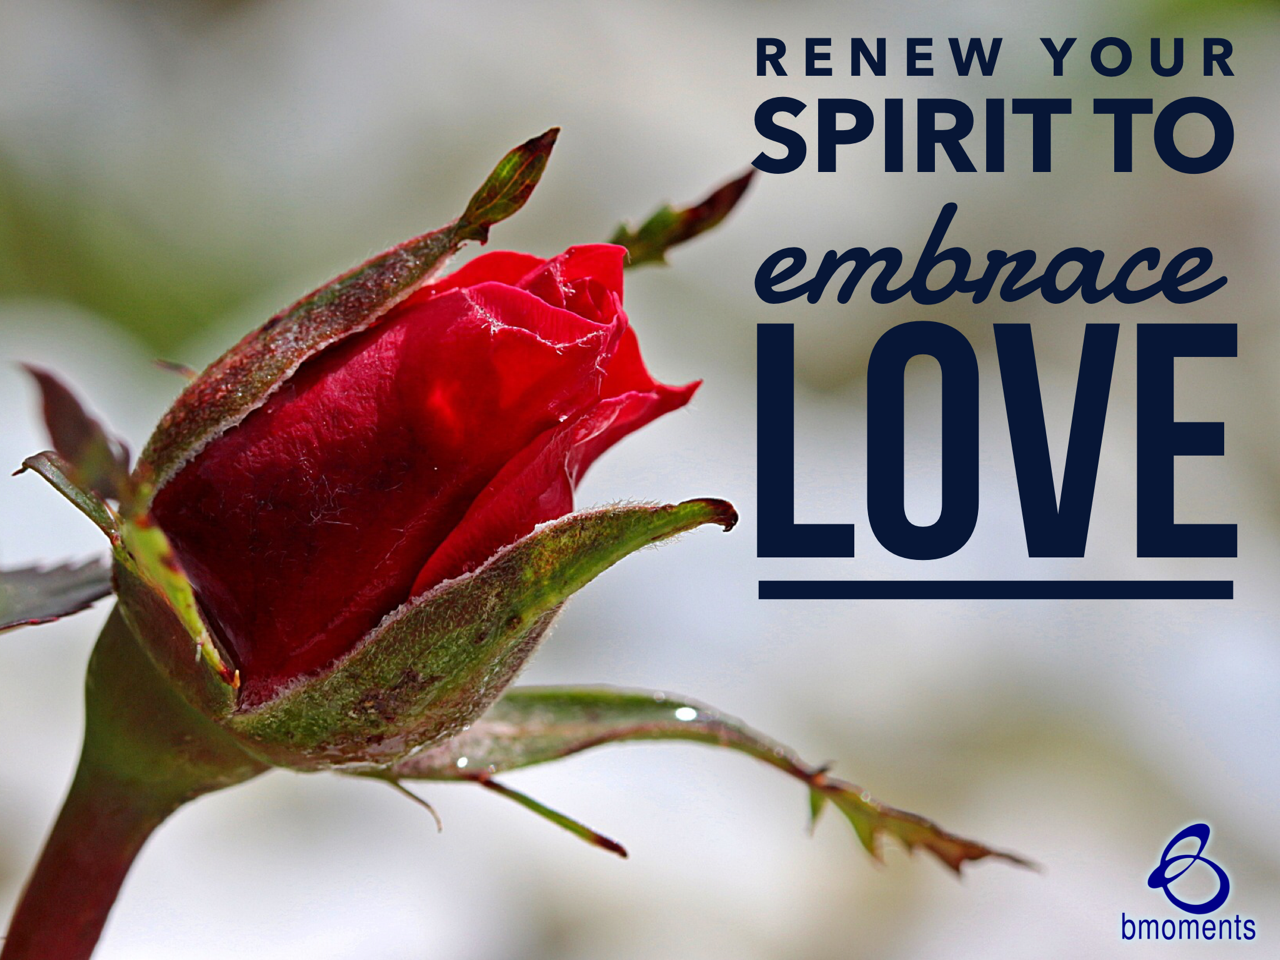 Renew Your Spirit to Love and Be Loved